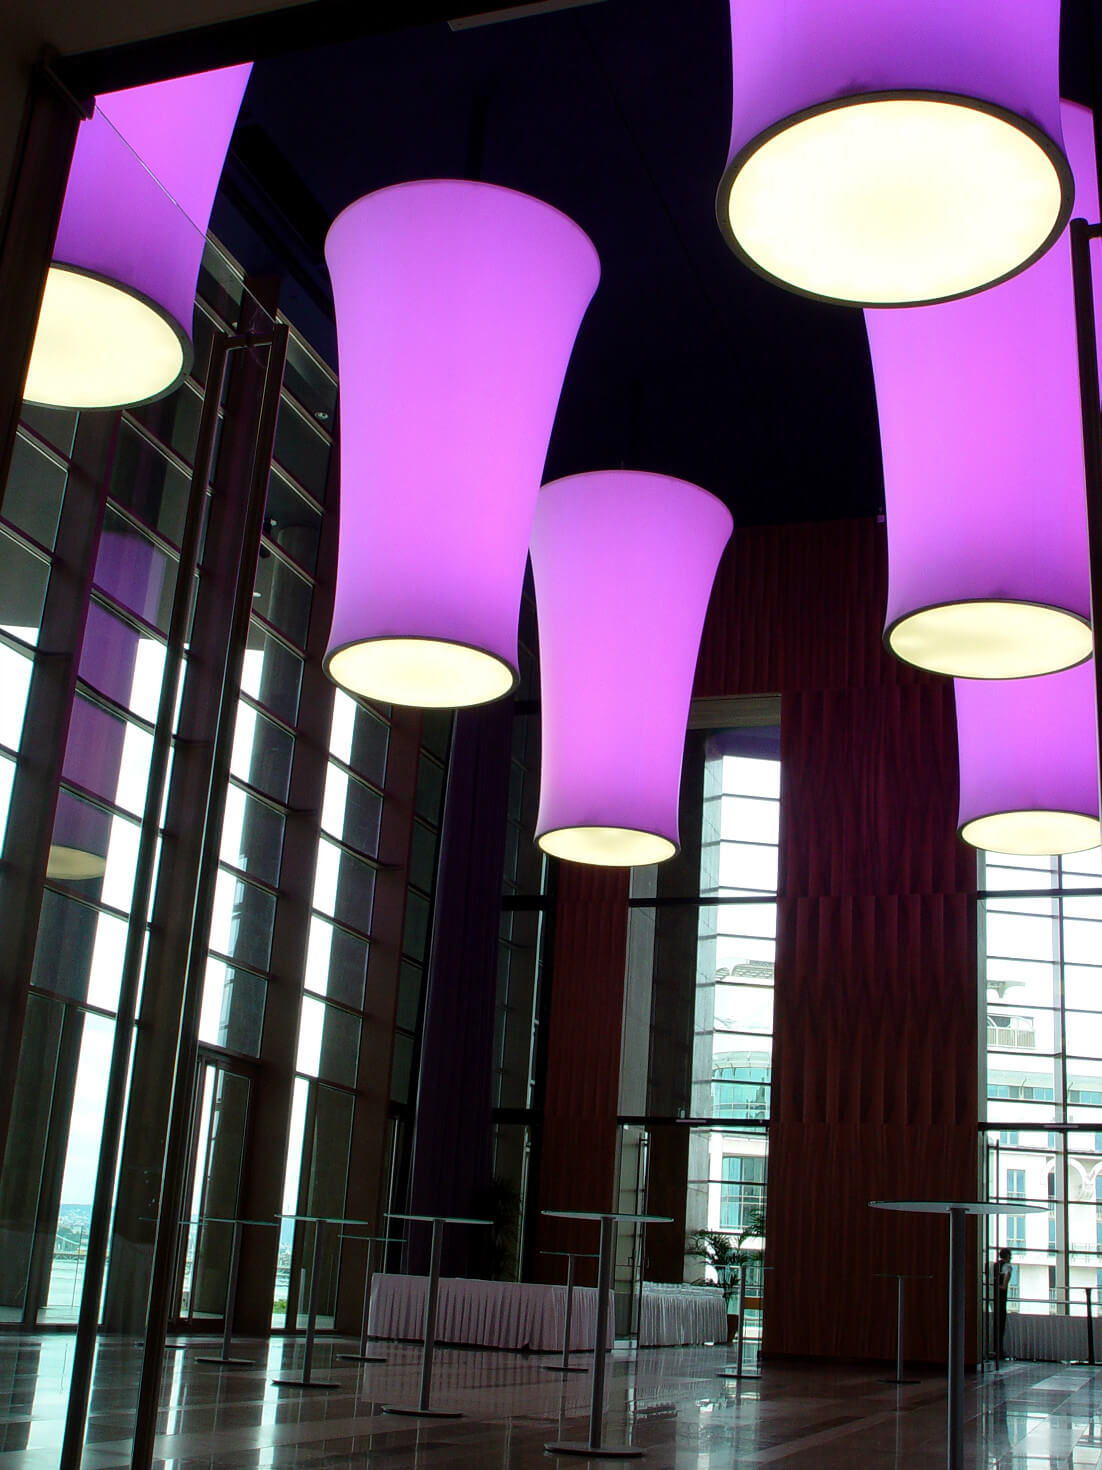 Luminaires equipped with stretched thin foil surface and color-changing technology